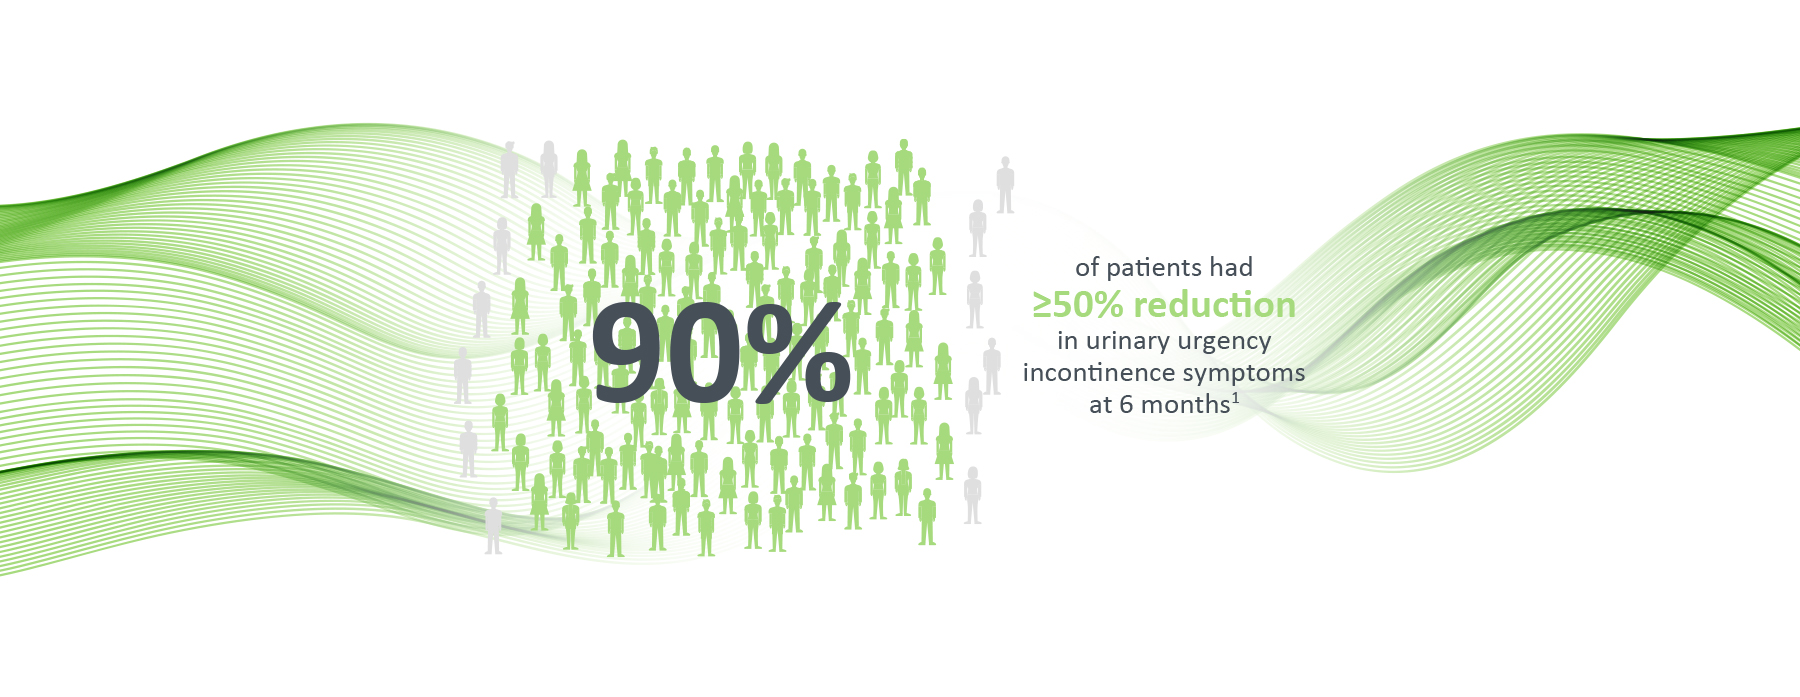 90% of patients had a more than 50% reduction in urinary urgency incontinence symptoms at 6 months